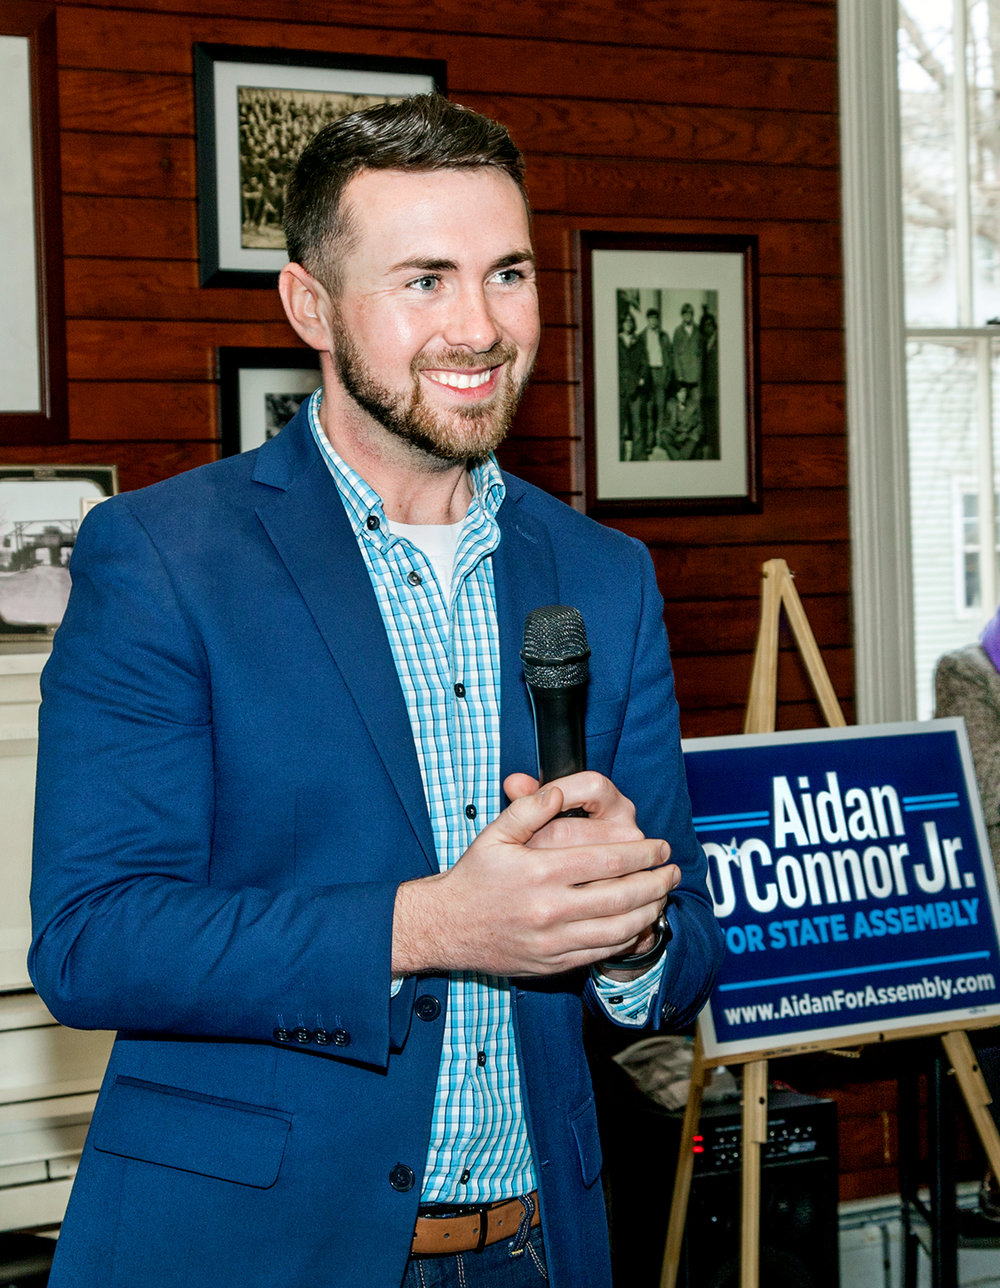 GOTV for Aidan O'Connor Jr. for Assembly - Phone Bank  - Make phone calls at the Catskill HQ  April 21, 22, 23 from 11-8:30pm and  April 24th ~ Election Day ~ from  10am-9pm  at  404 Main Street in Catskill   Click on Photo for Facebook Event.